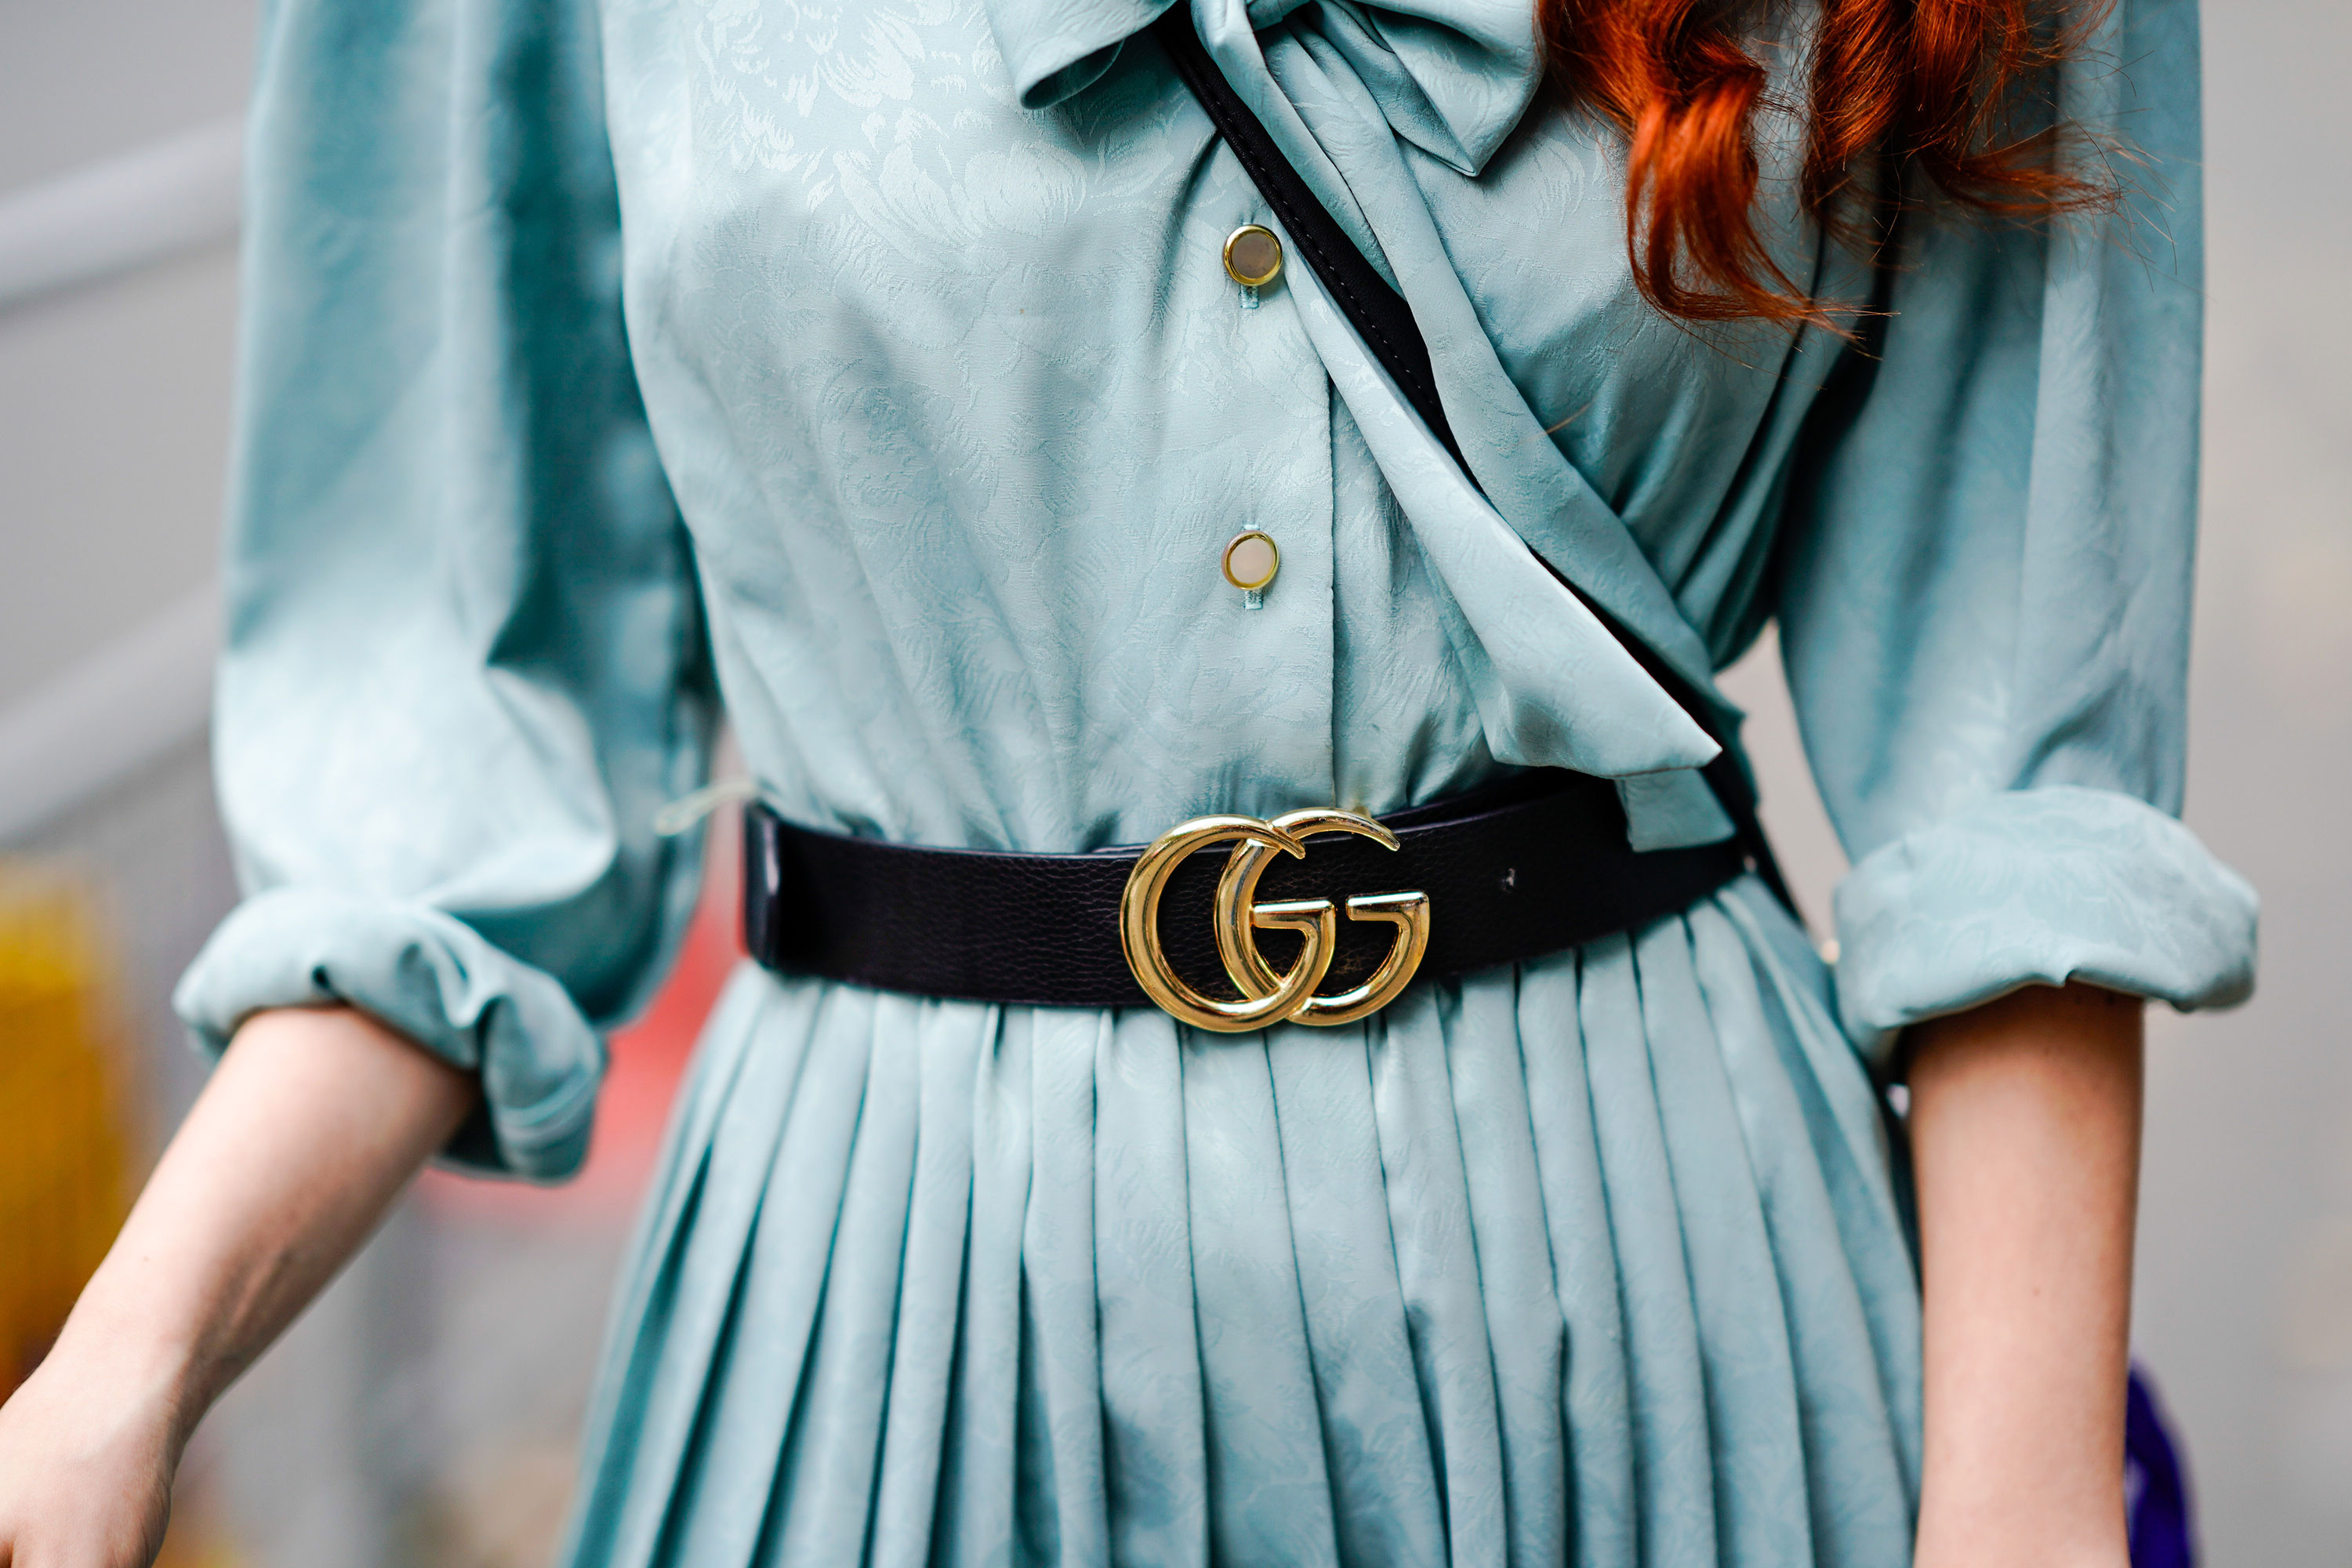 b523f9eee Gucci Belt Mania 2018: The Year the Double G's Took Over | InStyle.com